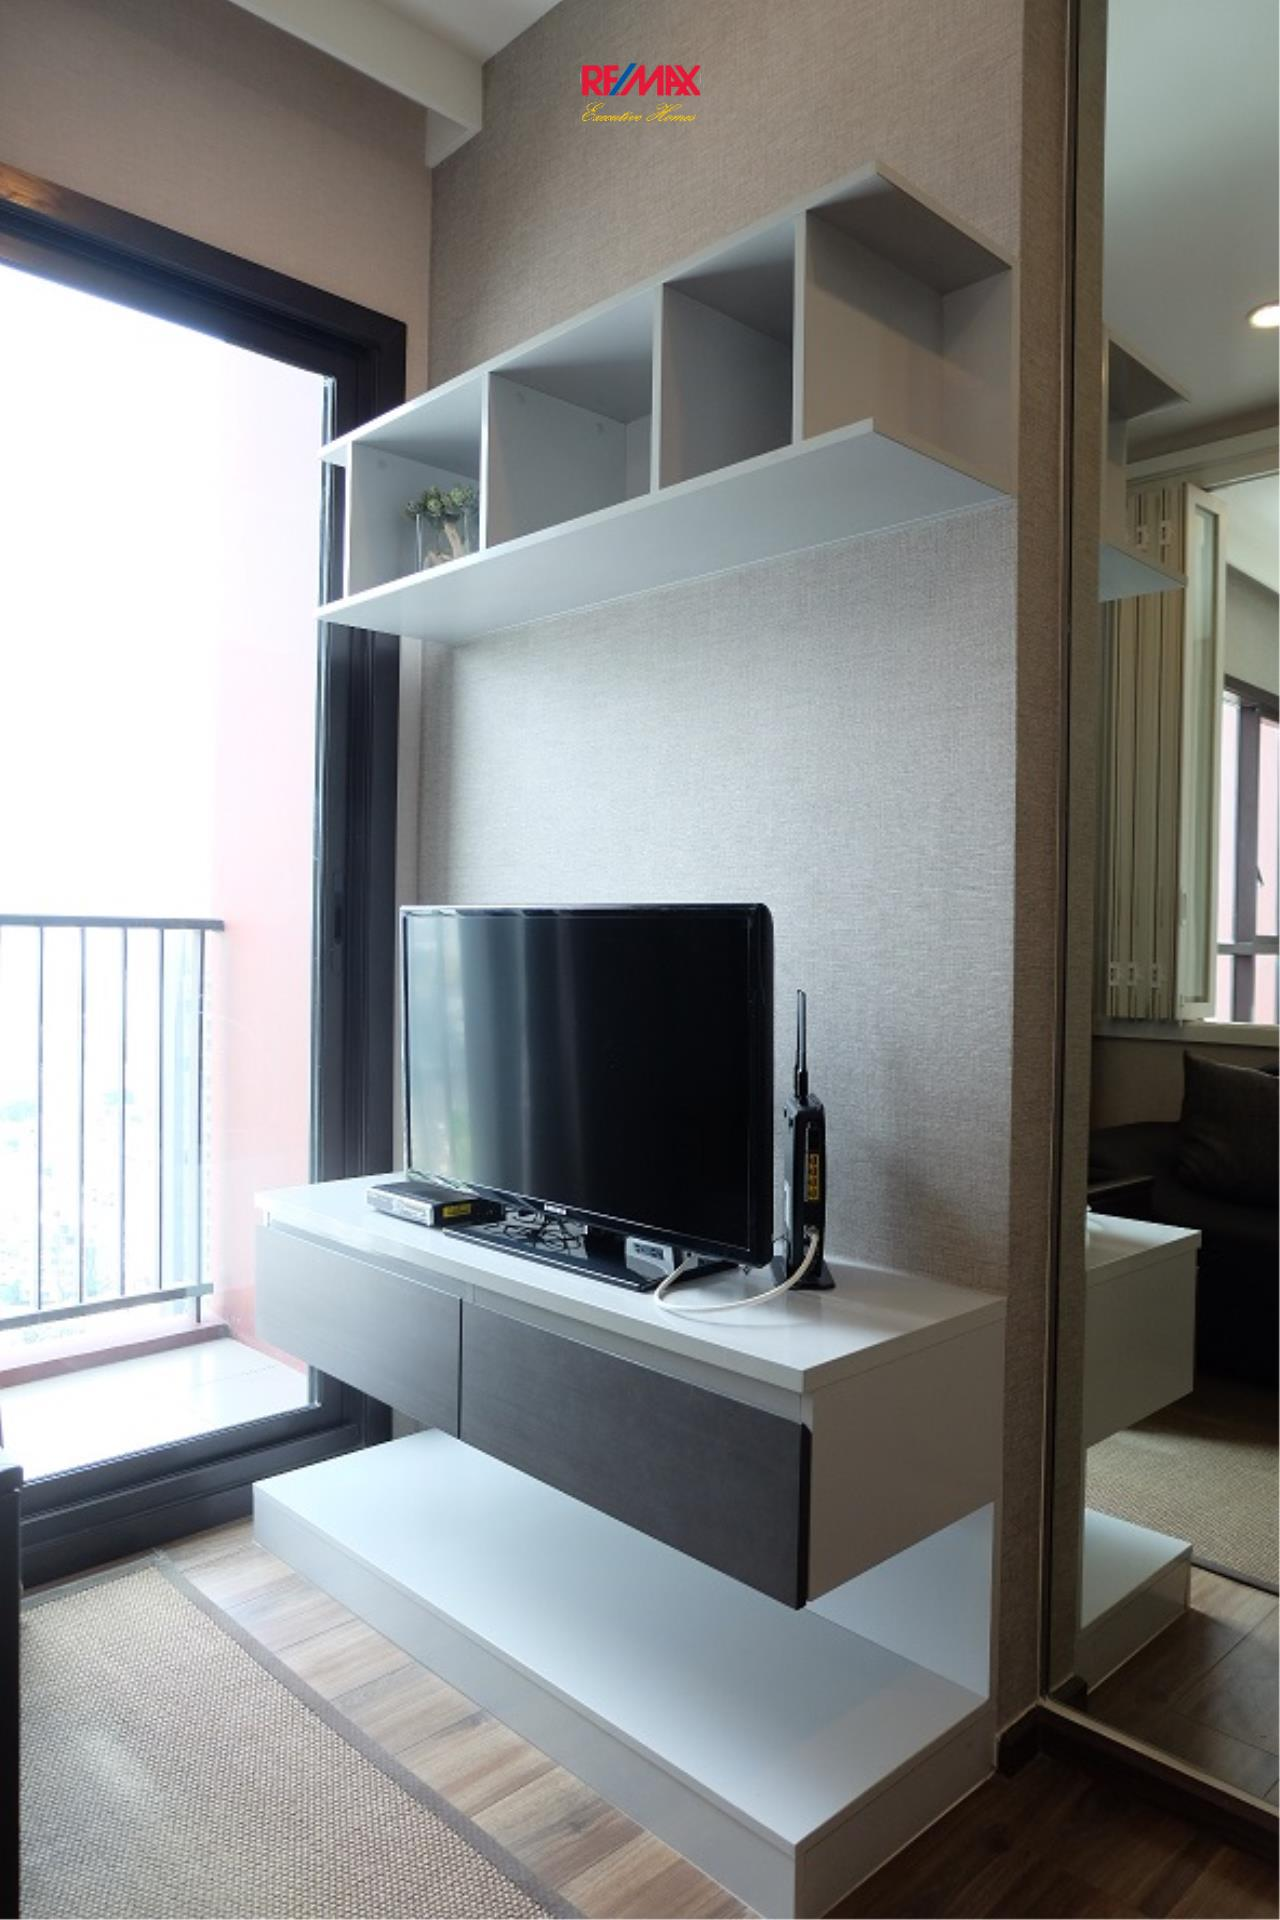 RE/MAX Executive Homes Agency's Nice 1 Bedroom for Sale Wyne by Sansiri 4